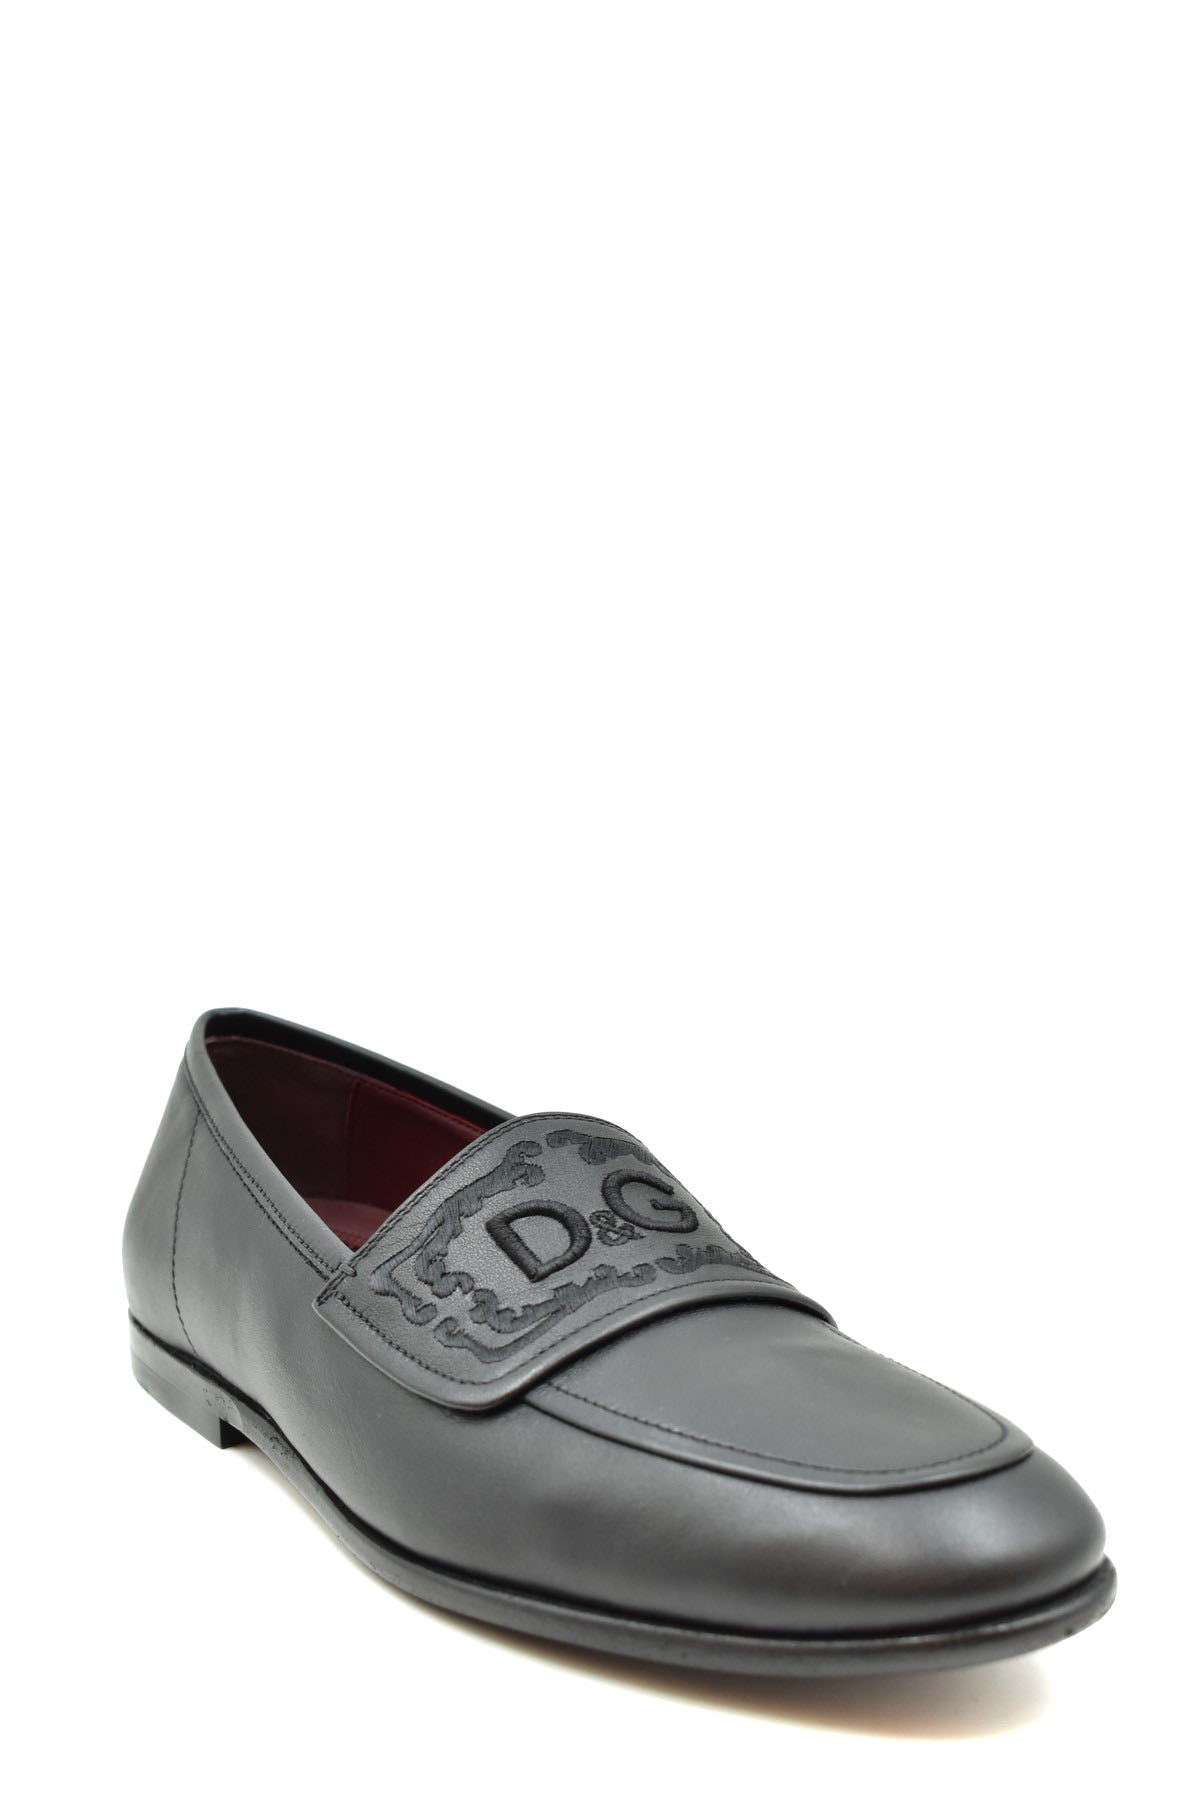 Shoes Dolce & Gabbana-Men's Fashion - Men's Shoes - Loafers-Product Details Year: 2020Composition: Leather 100%Size: EuGender: ManType Of Accessory: ShoesMain Color: BlackTerms: New With LabelSeason: Fall / WinterMade In: ItalyManufacturer Part Number: A50253 Ac355 80999-Keyomi-Sook